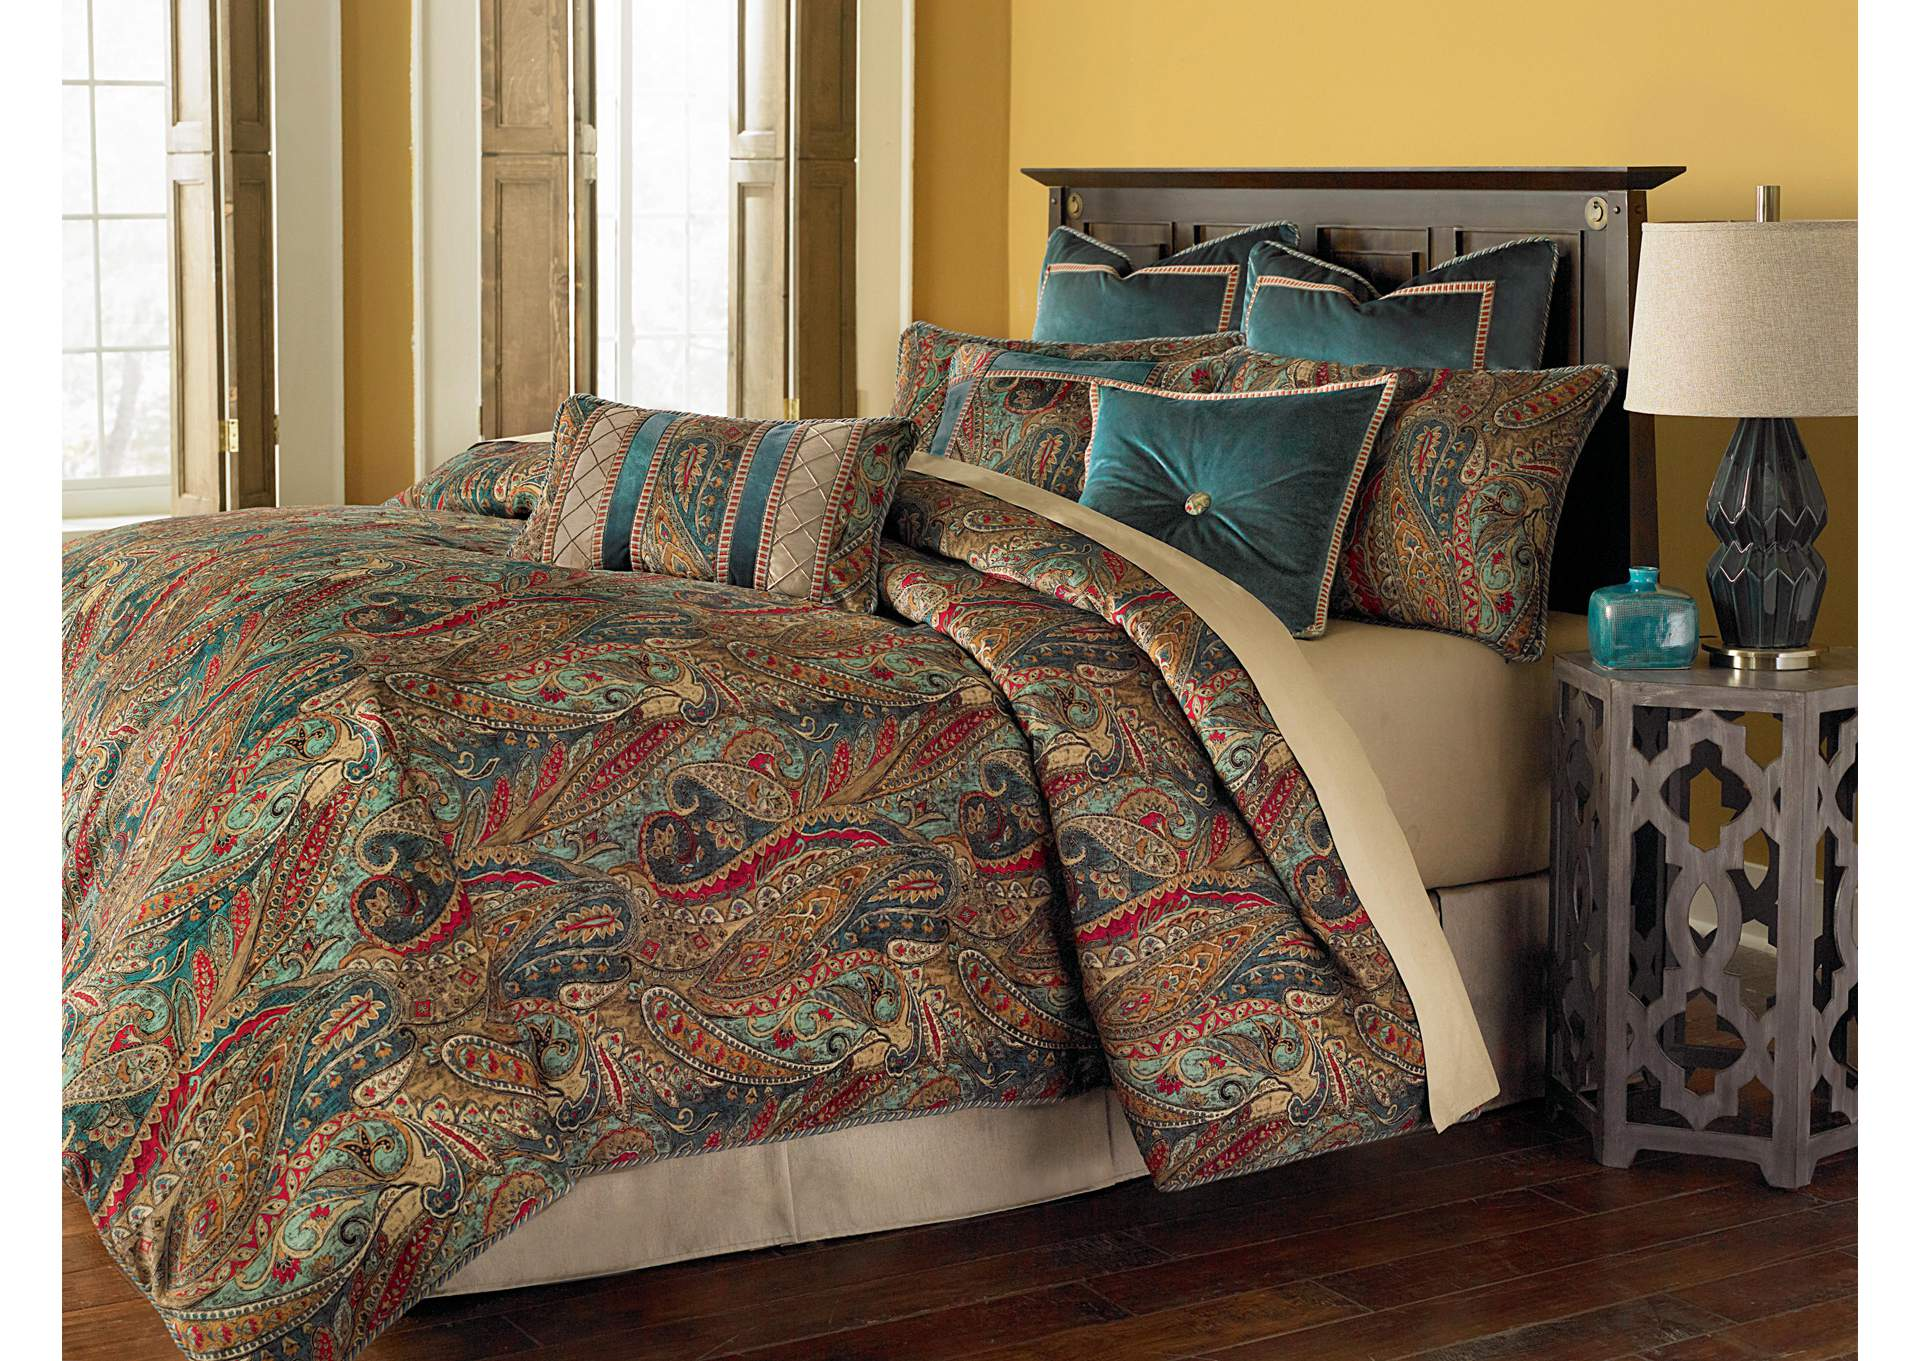 Seville Multicolor 9 pc. Queen Comforter Set,AICO